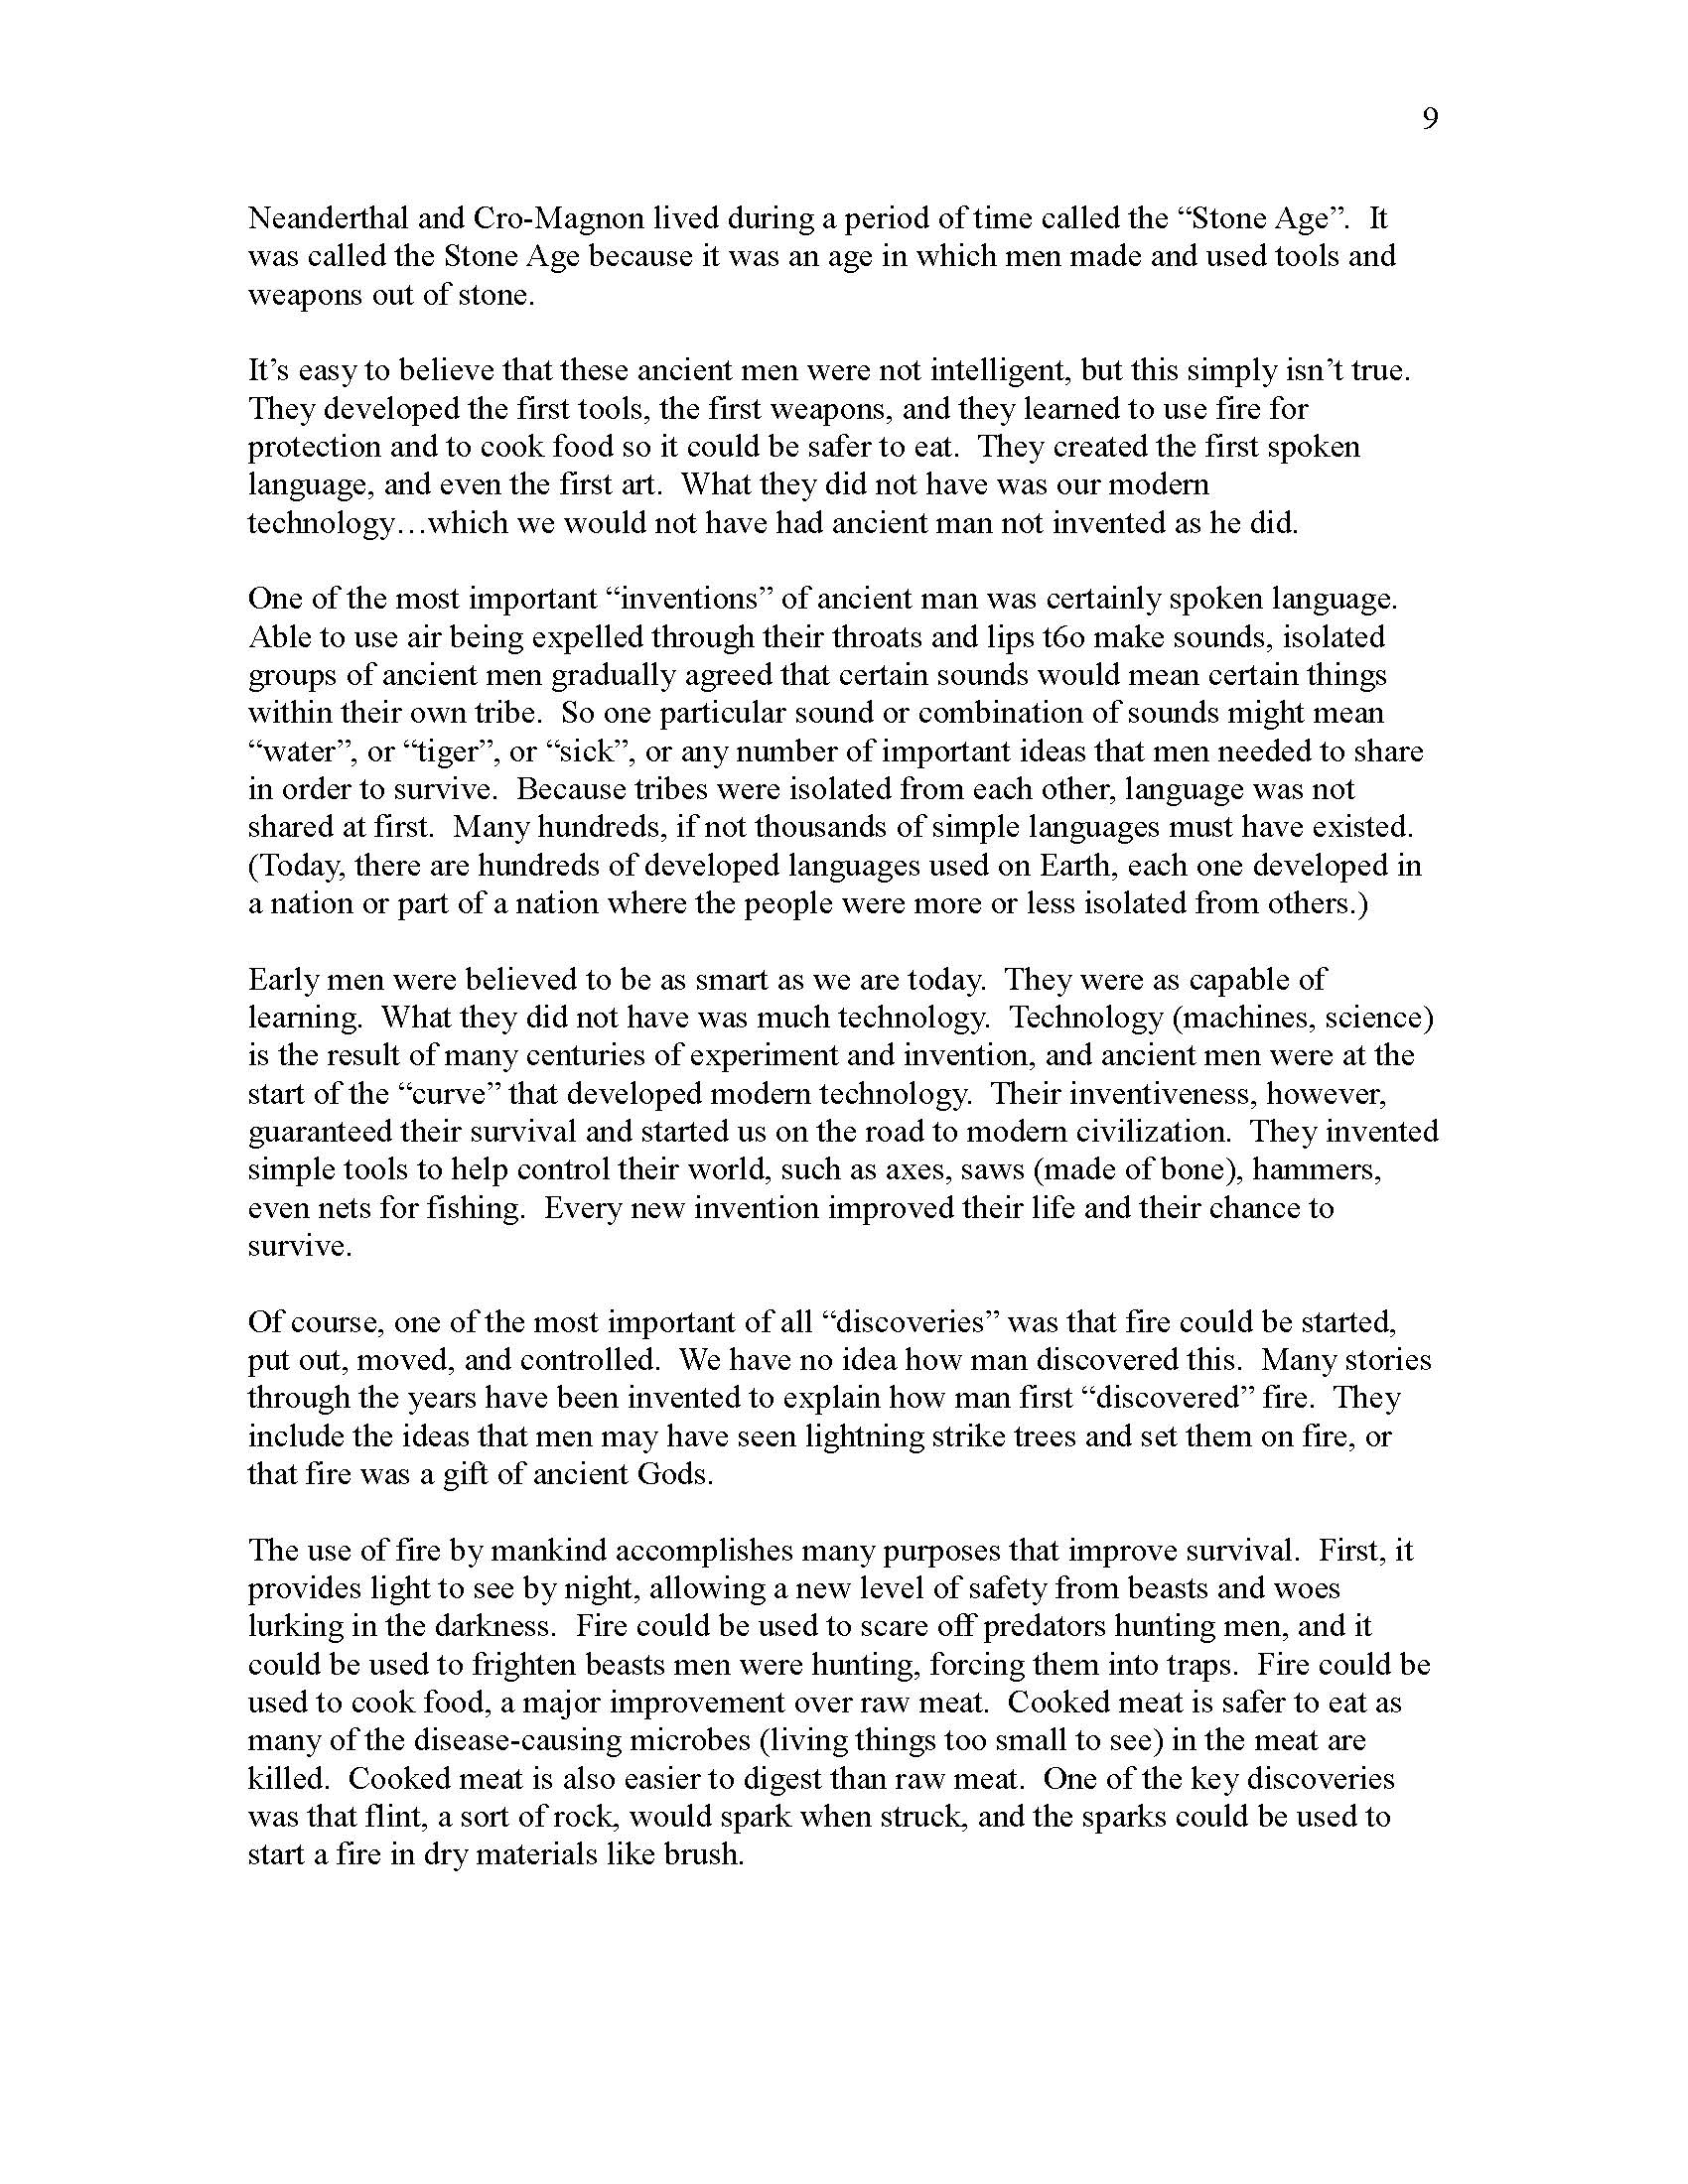 Step 4 History 2 - Early Civilizations_Page_010.jpg